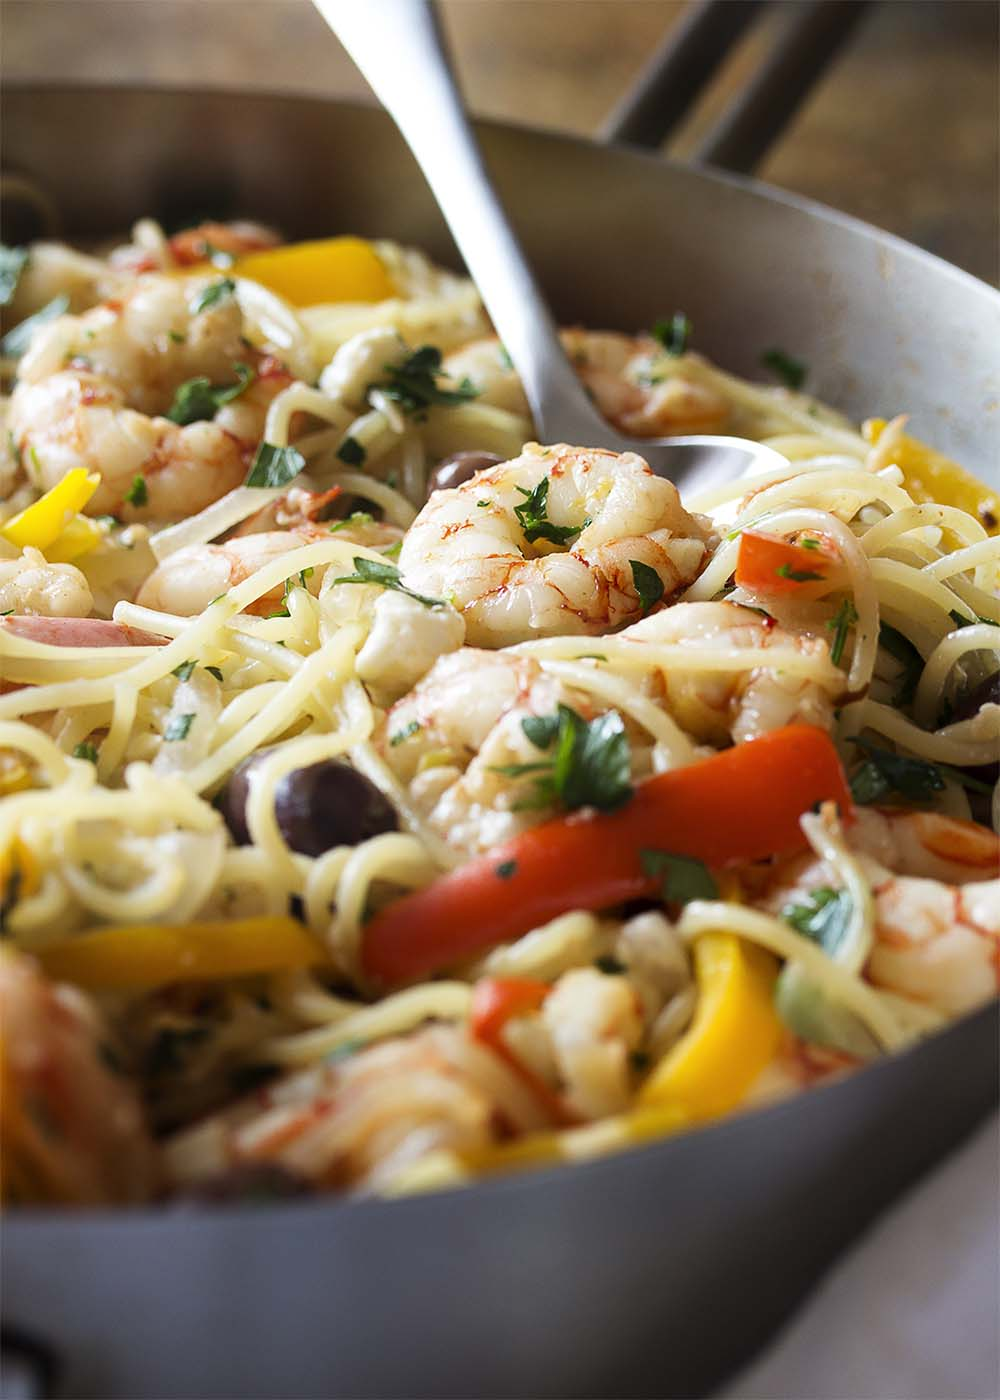 Close-up of a spoon serving a portion of shrimp and pasta from a large saute pan.